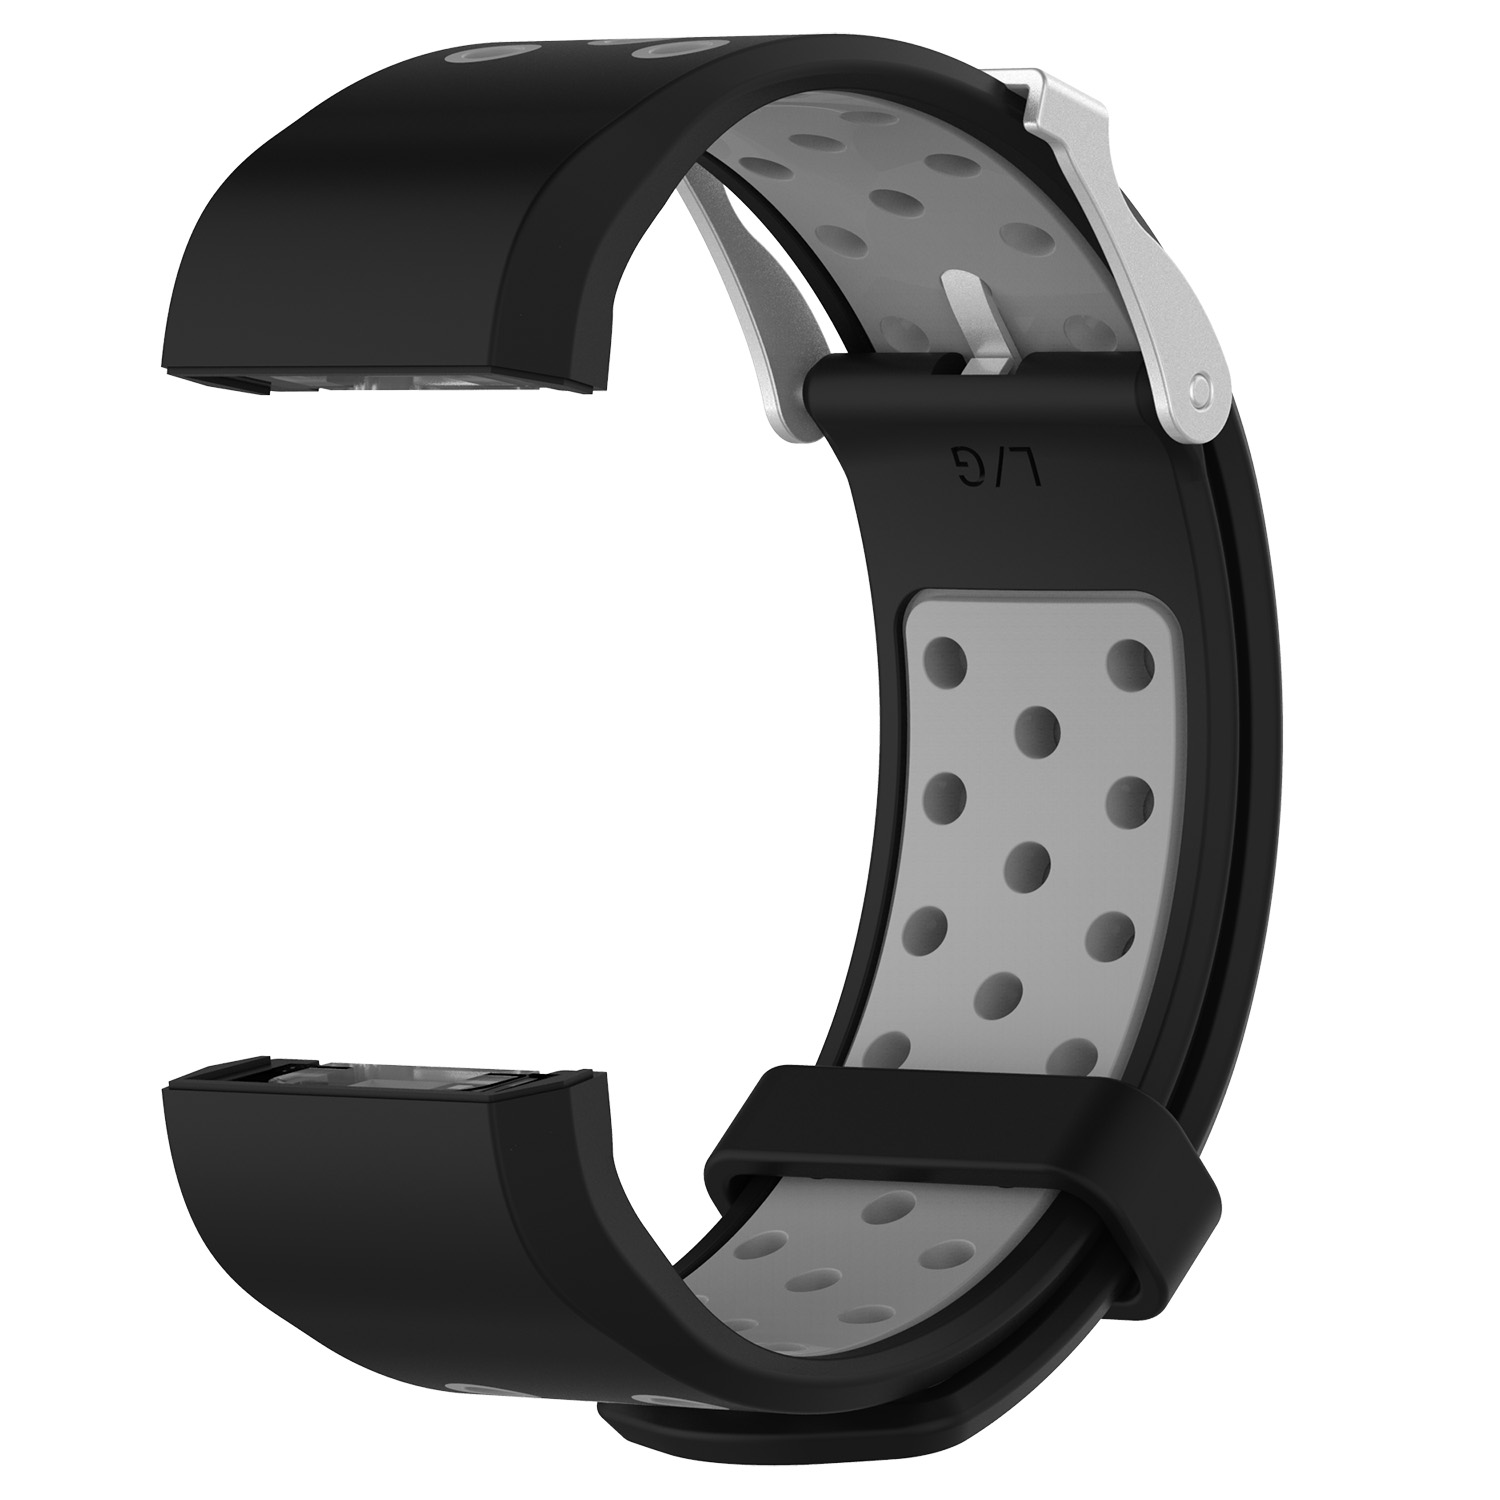 Replacement-Silicone-Wristband-Watch-Strap-Bands-Bracelet-For-Fitbit-Charge-2 thumbnail 83